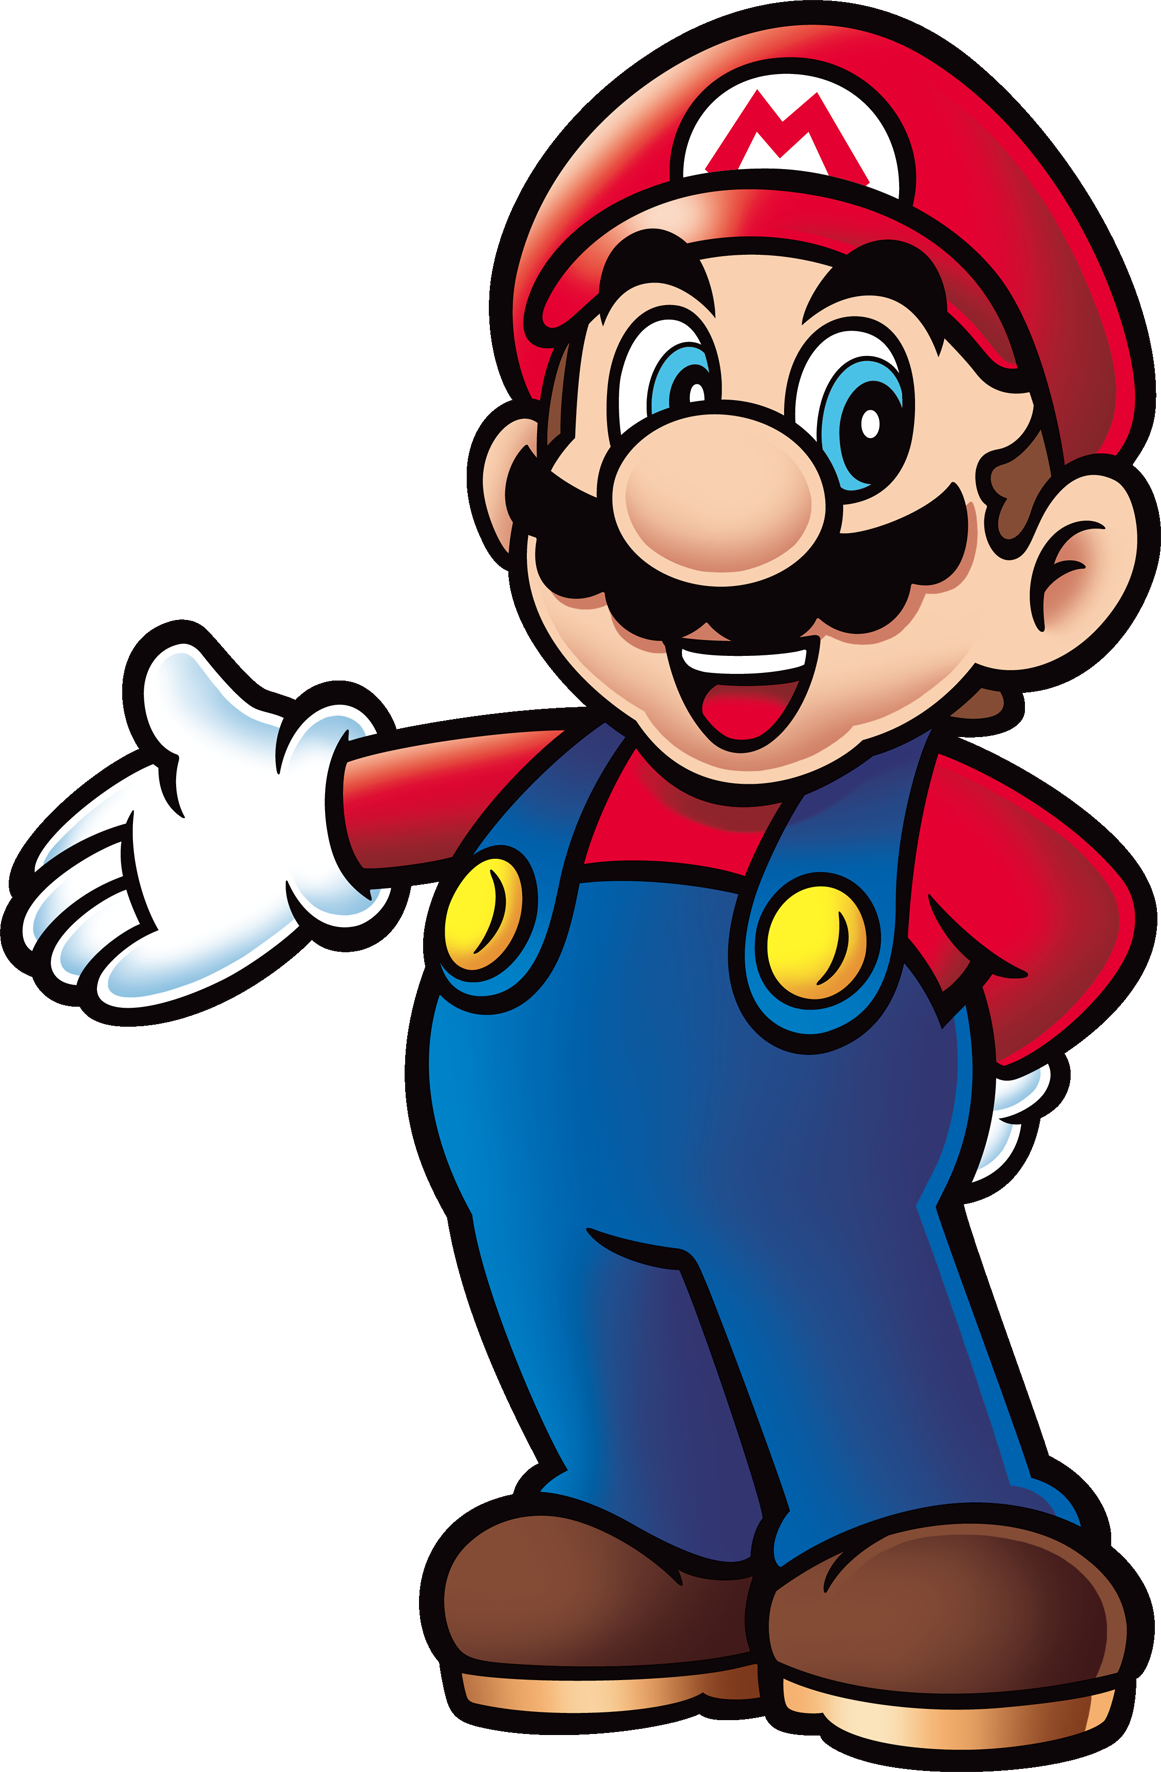 Super mario star eyes clipart image download super-mario-04.png (1161×1772) | Super Mario Bros | Pinterest ... image download